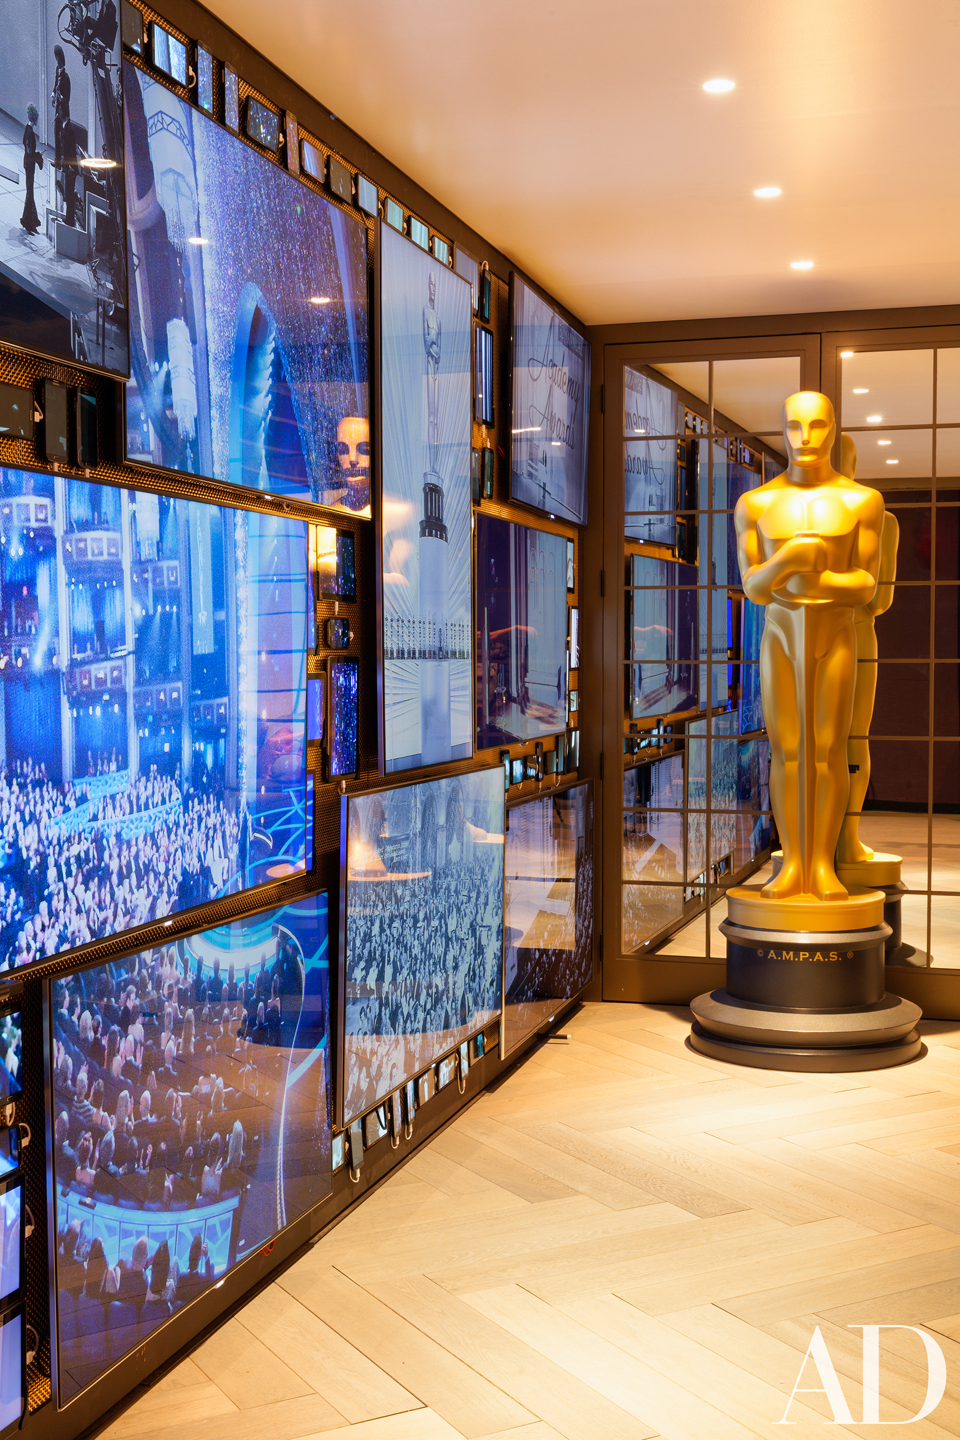 RD_Oscars2014_MG_9826_F_WM.jpg